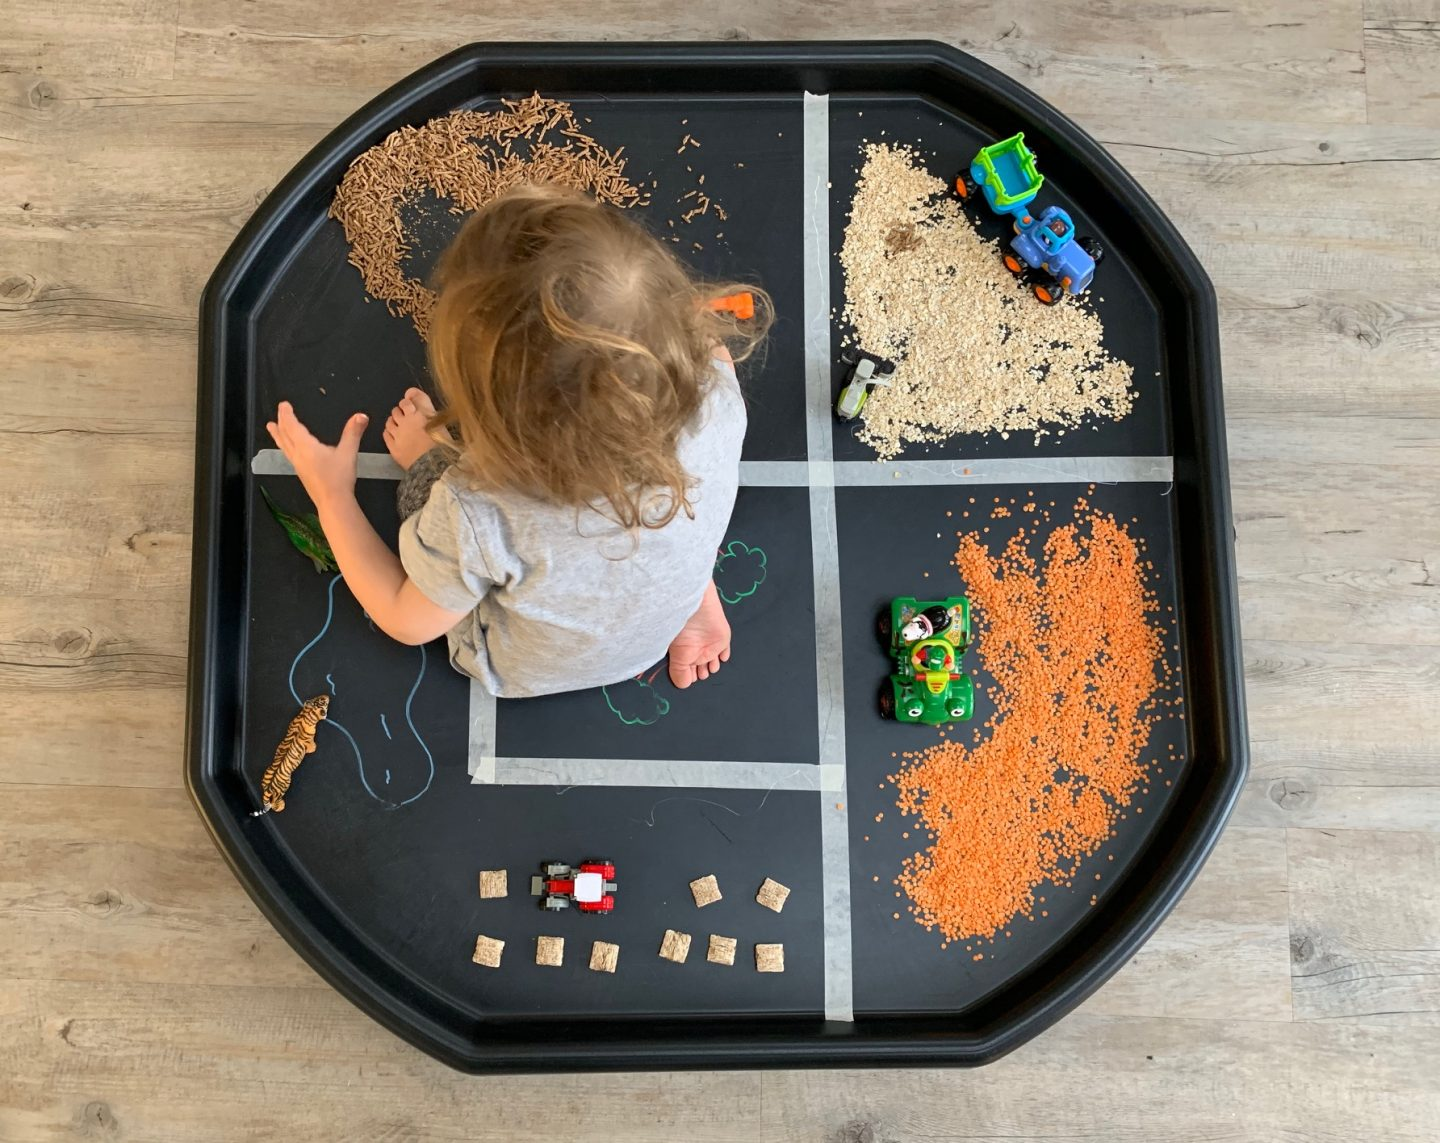 Simple tuff tray ideas for busy parents. Create a small farm play station with household ingredients, perfect for construction sites or farmyard fun.